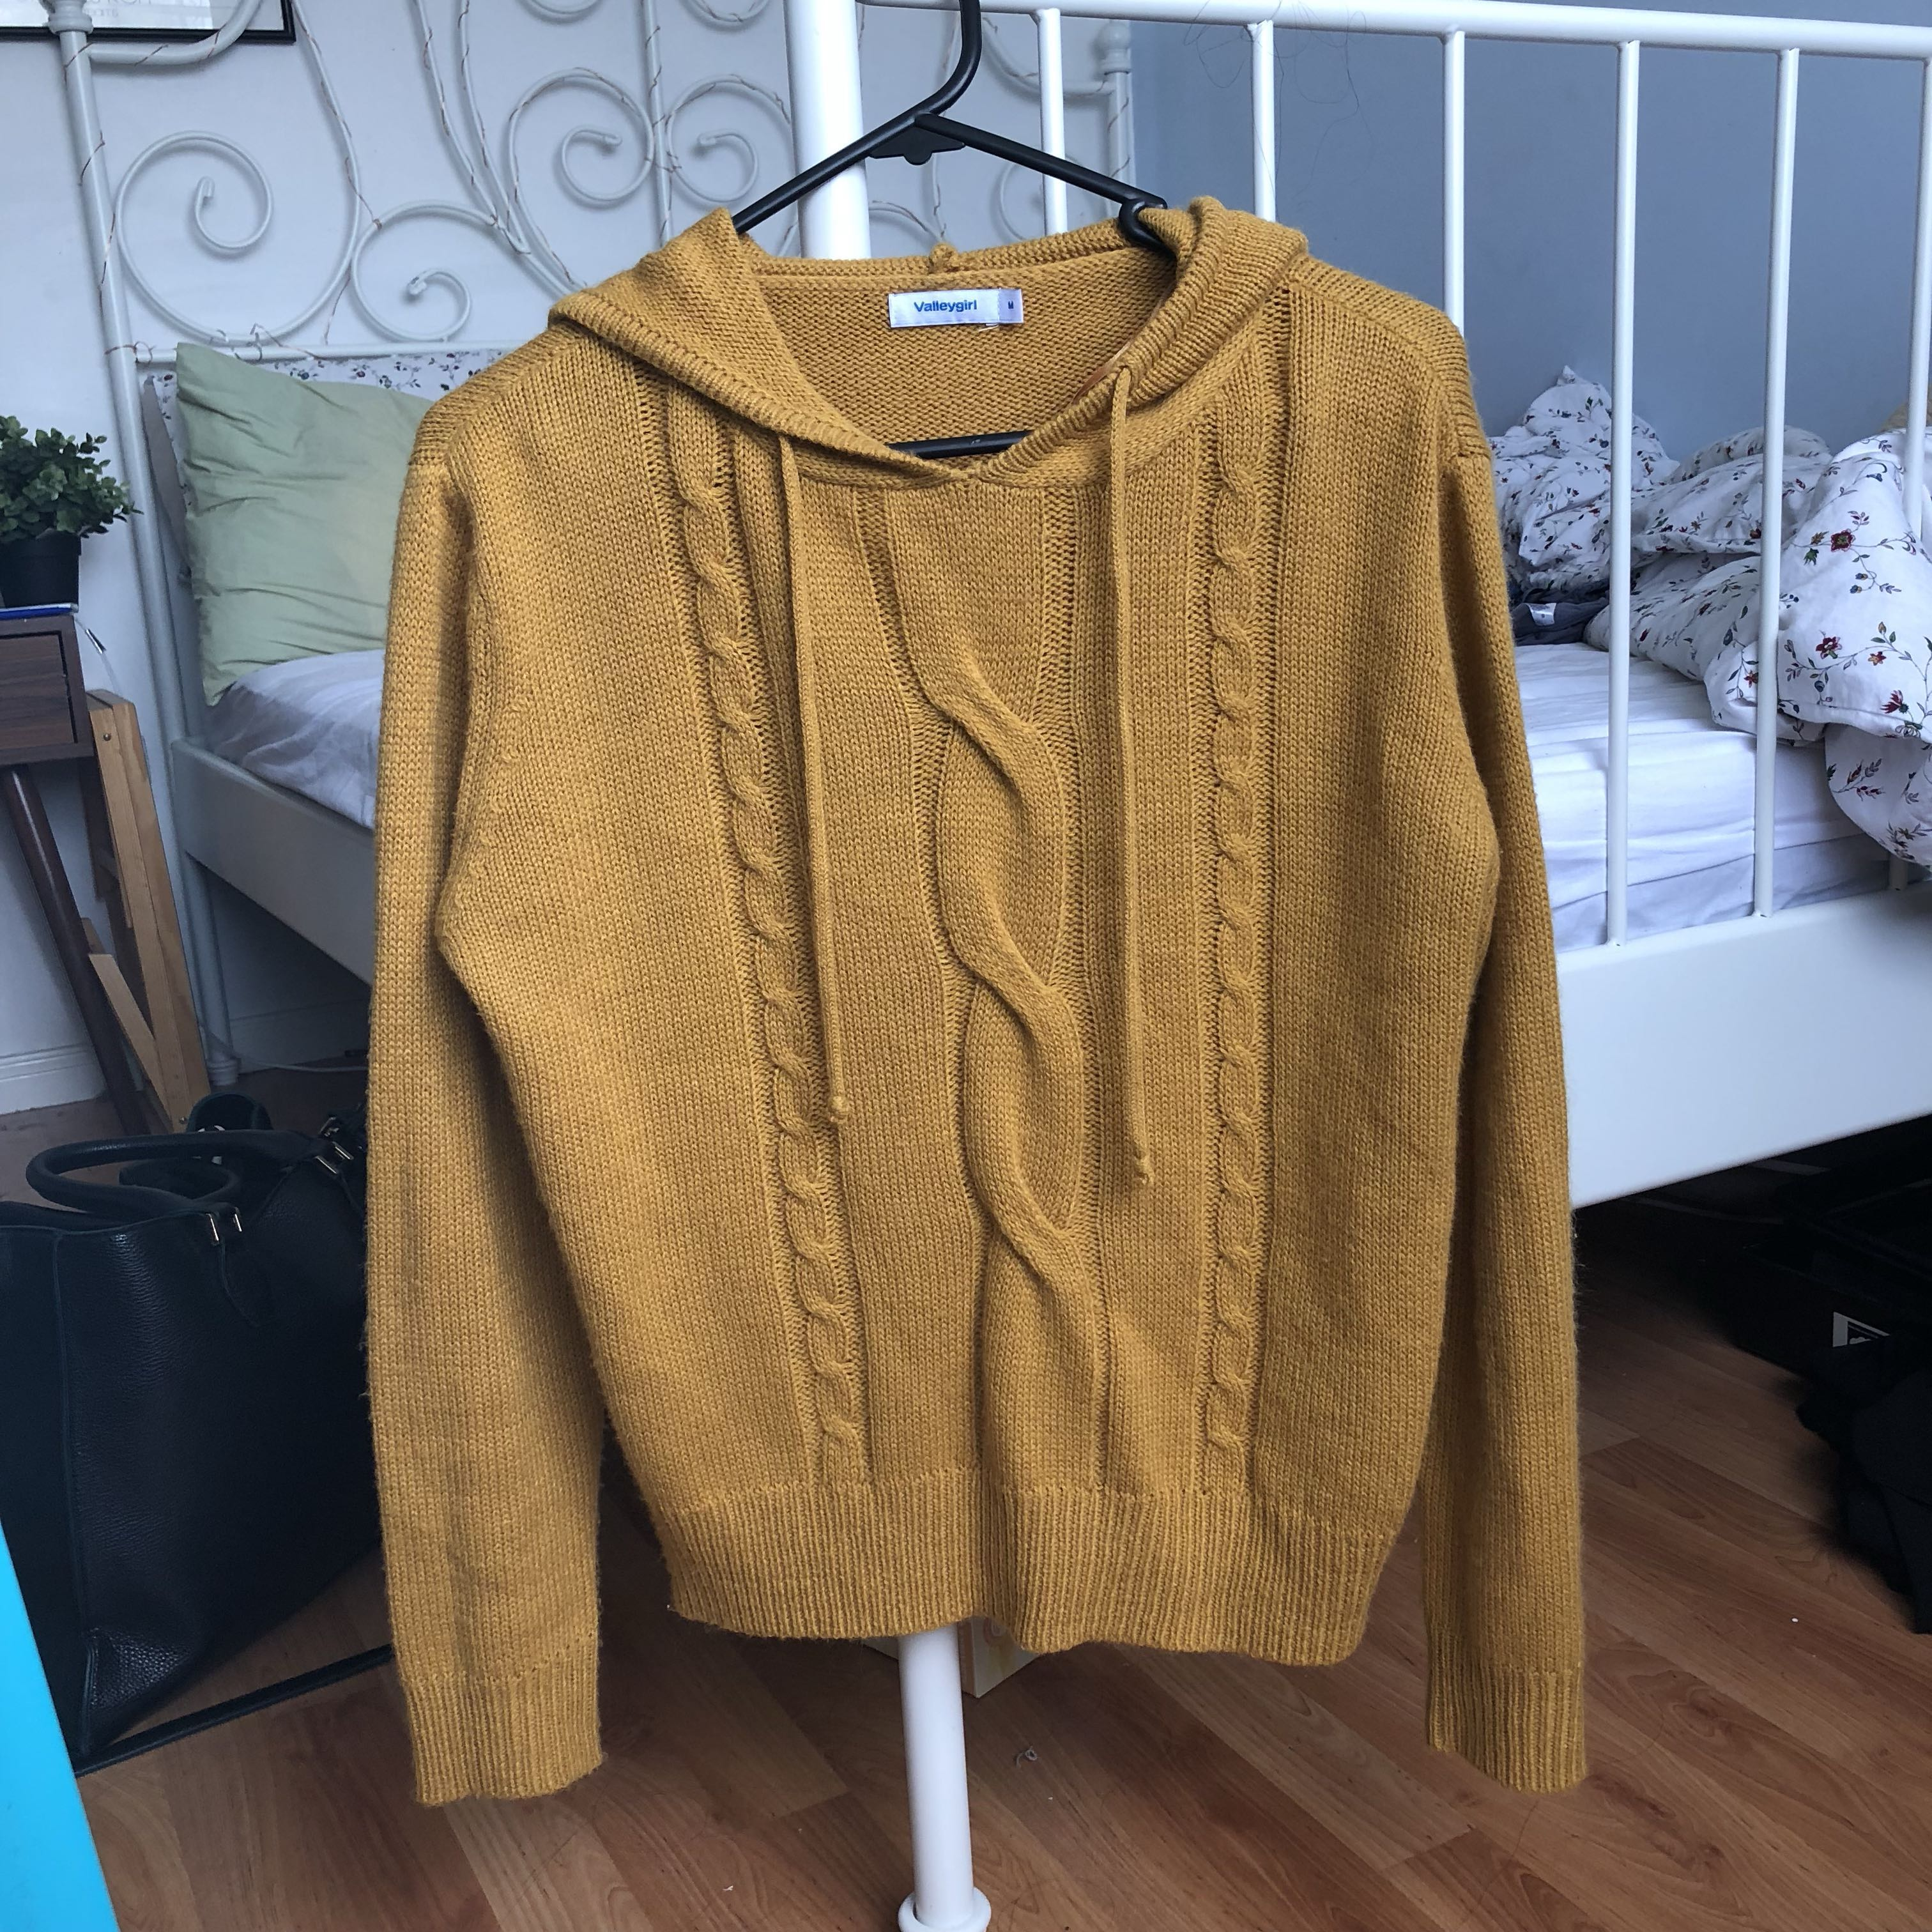 💕Adorable mustard knit hooded sweater